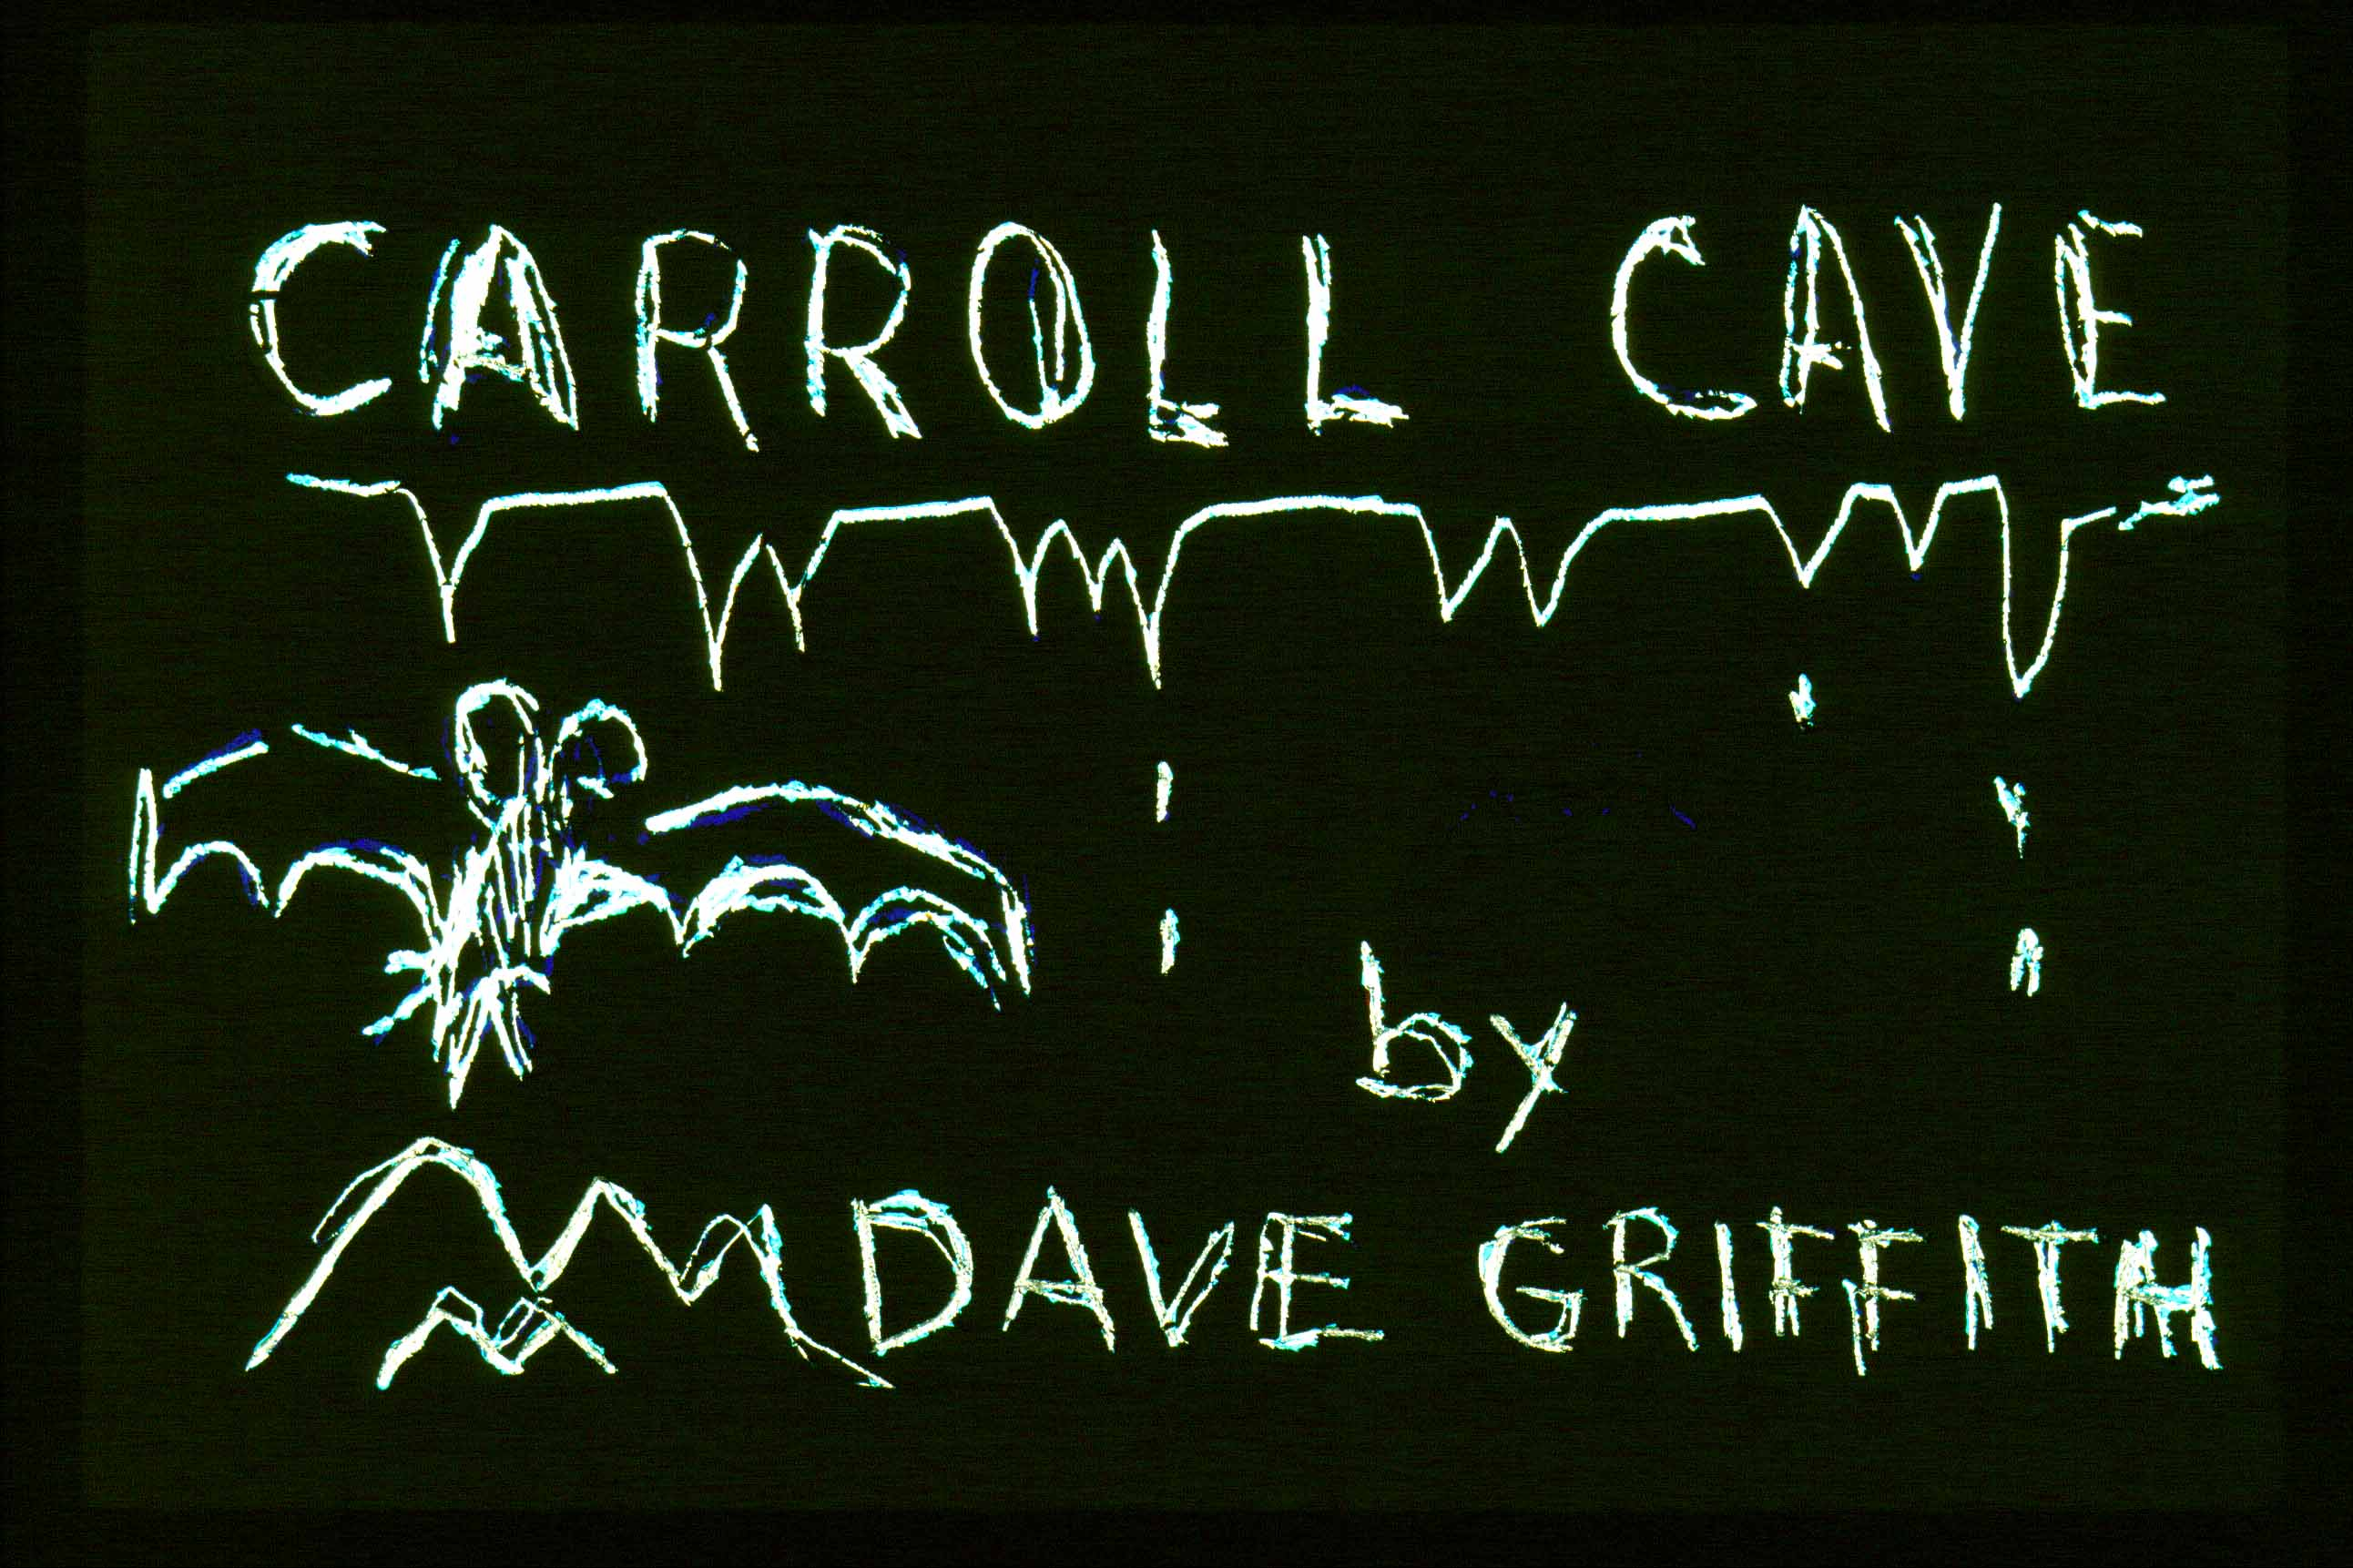 Carroll Cave Photo C1.jpg